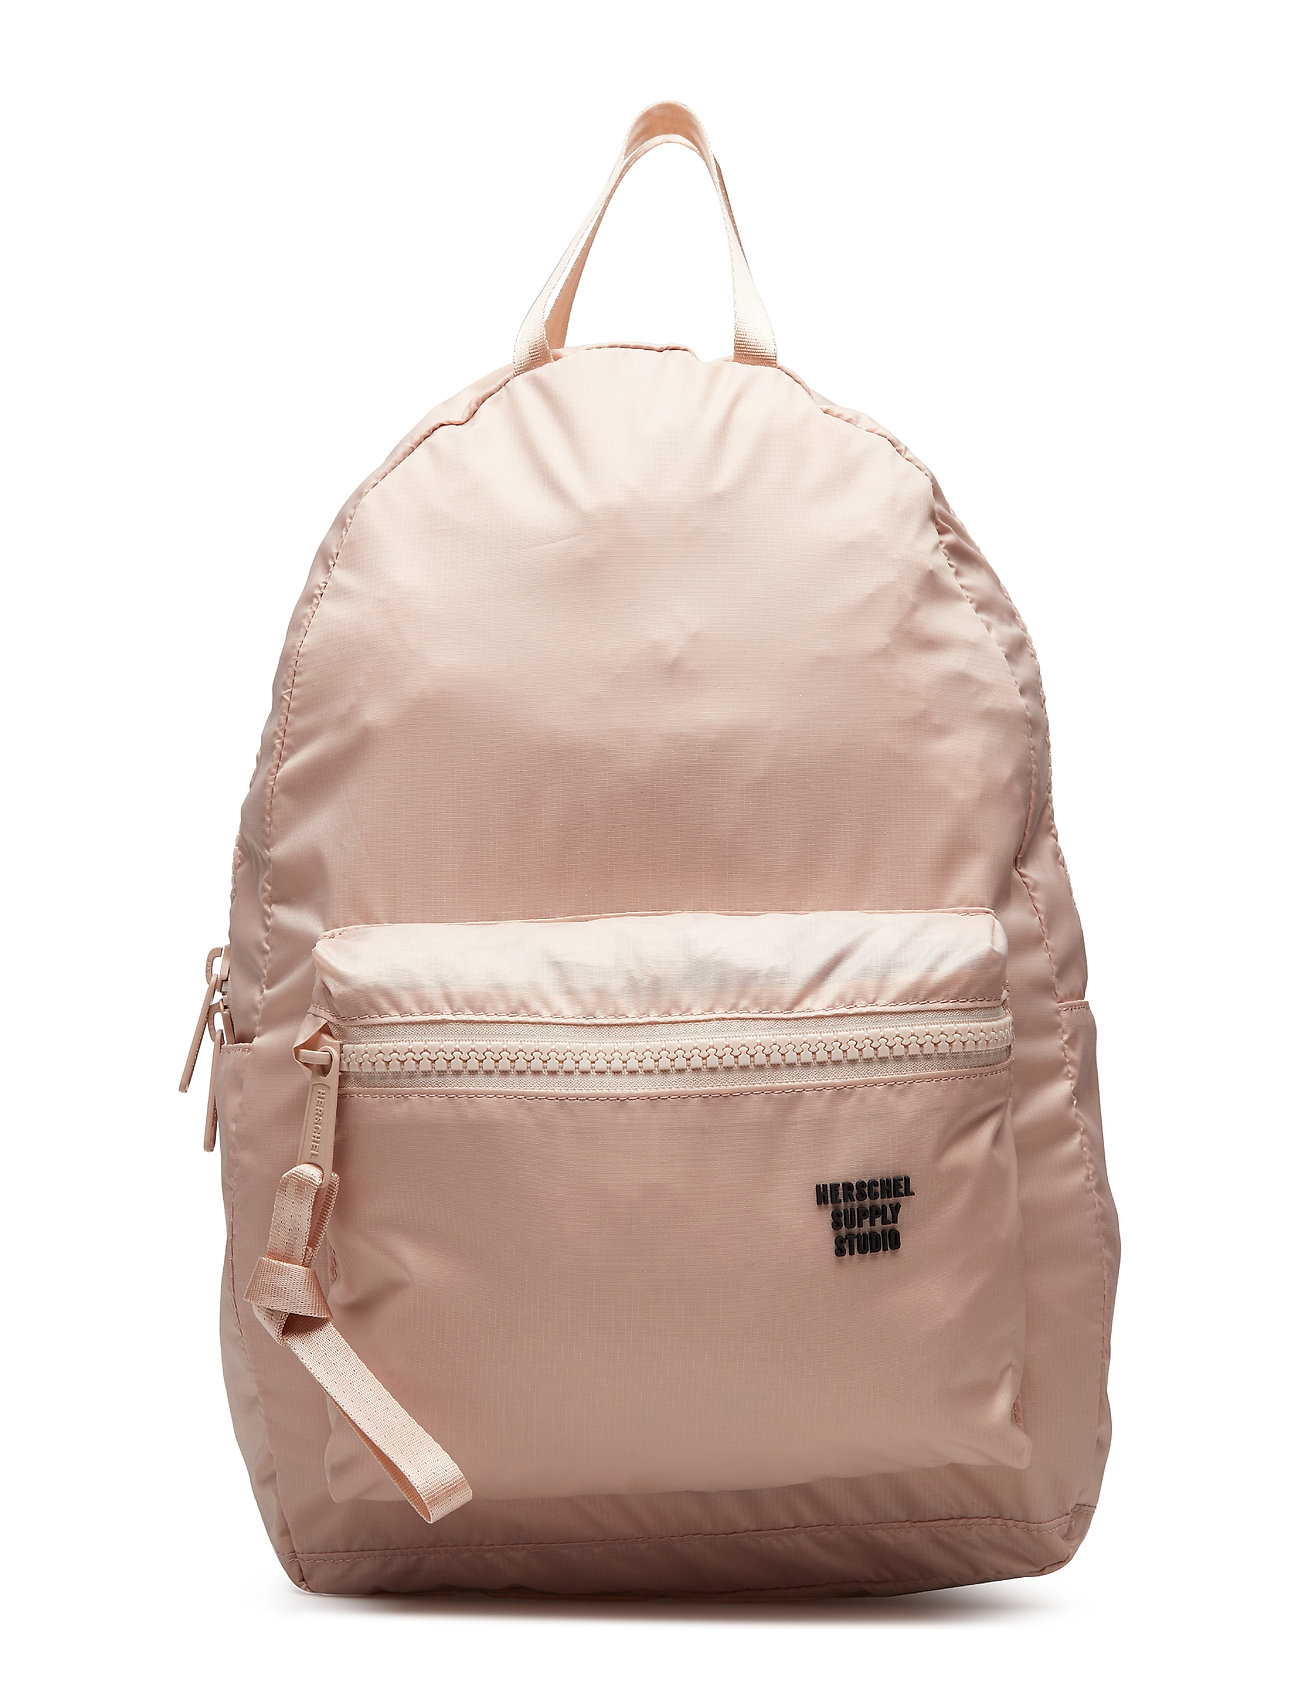 HERSCHEL Hs6 Backpack Bags Backpacks Use This Pink HERSCHEL